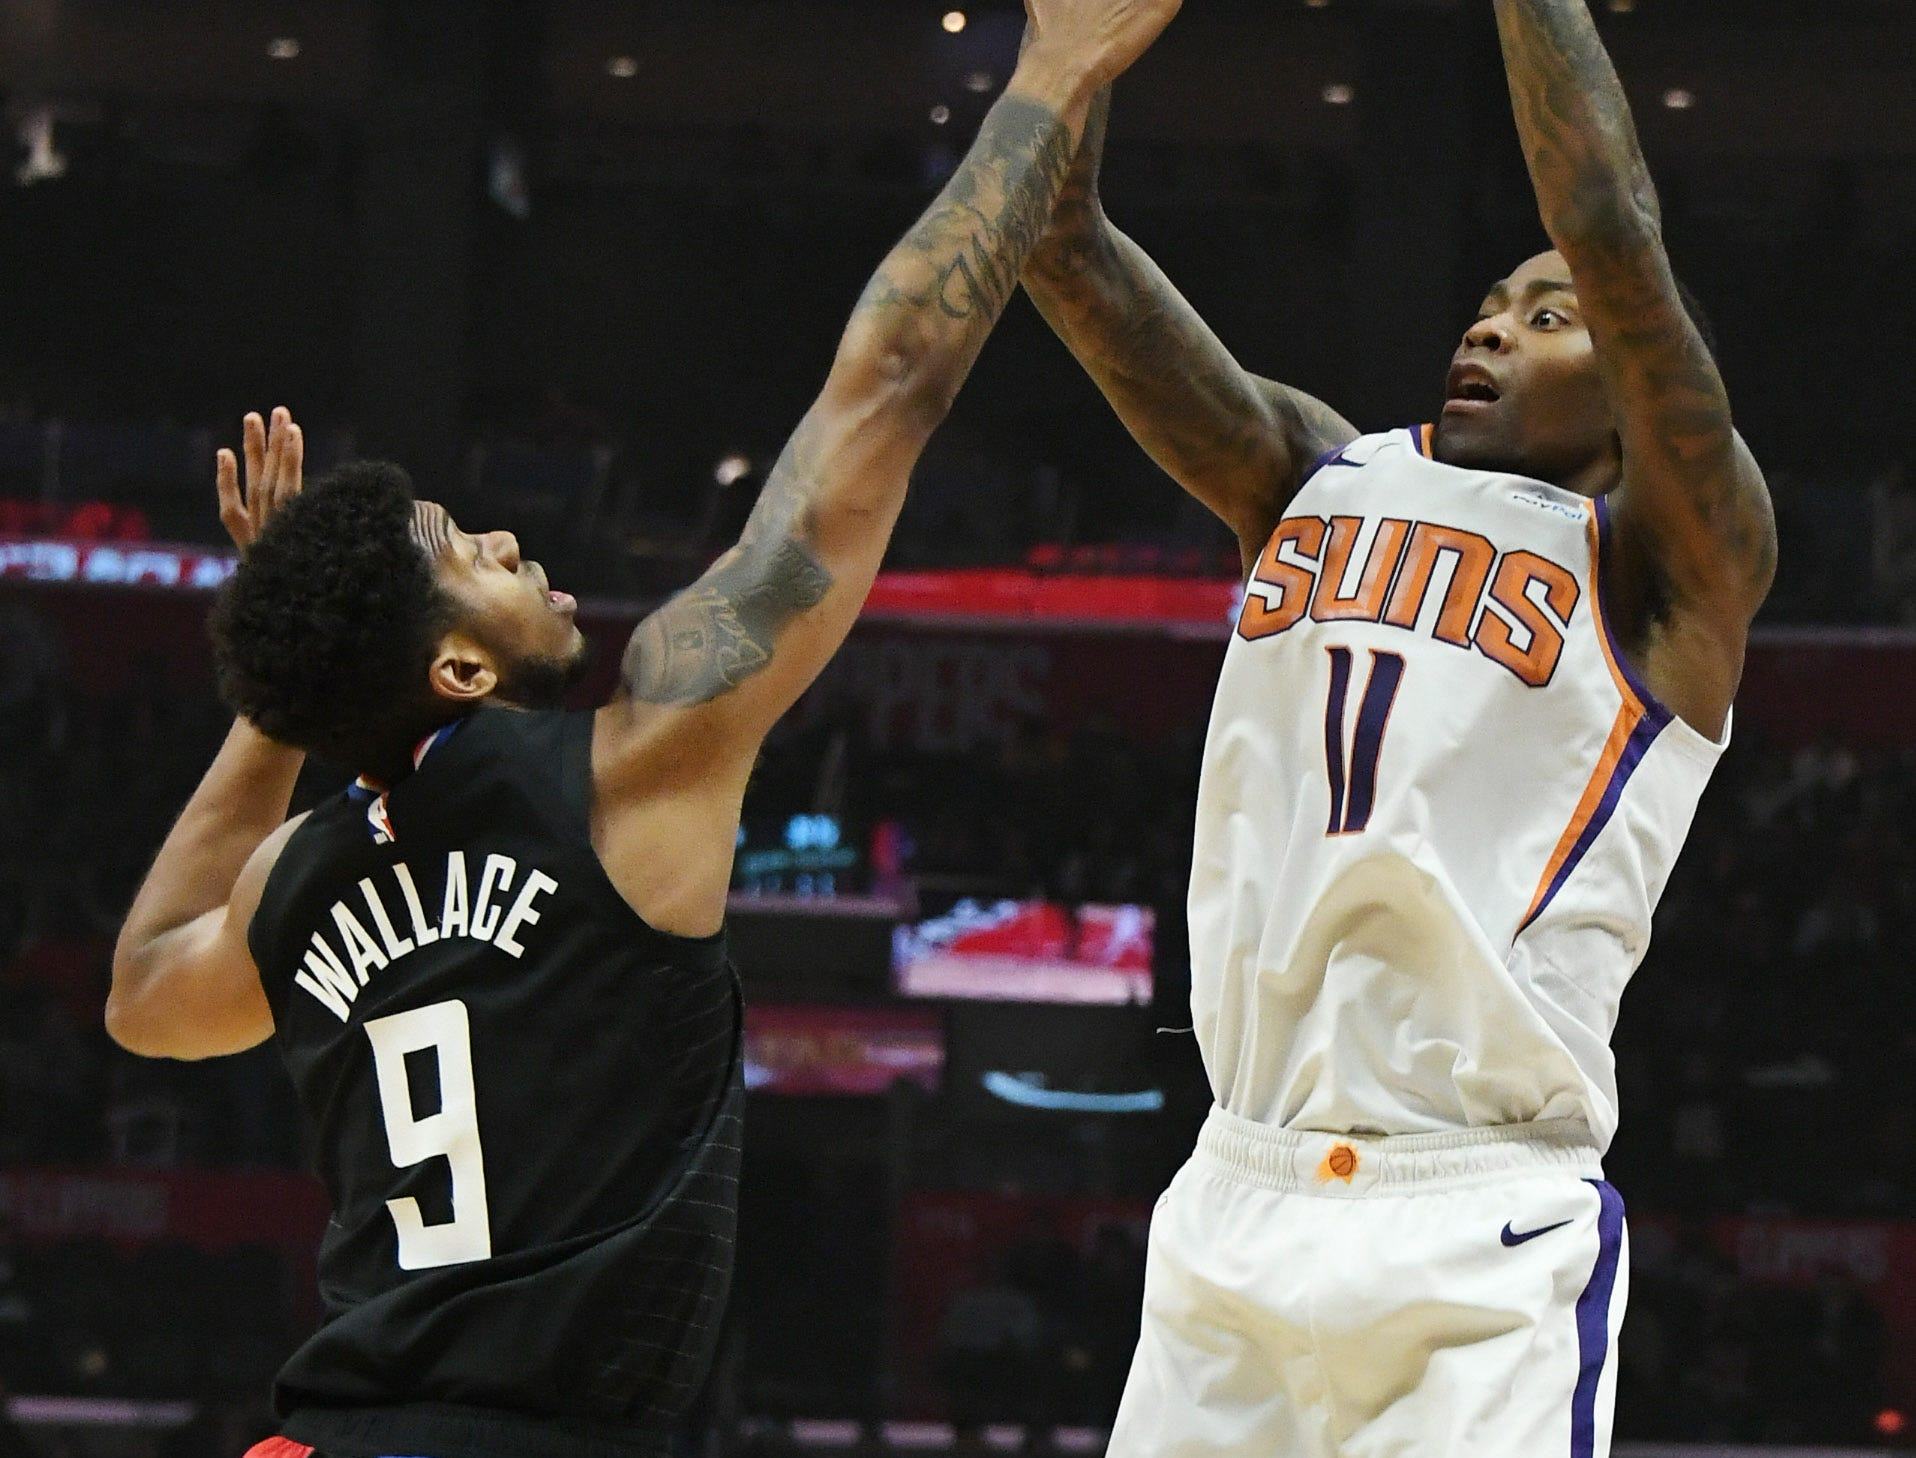 Feb 13, 2019; Los Angeles, CA, USA; Phoenix Suns guard Jamal Crawford (11) shoots over LA Clippers guard Tyrone Wallace (9) in the first half at Staples Center. Mandatory Credit: Richard Mackson-USA TODAY Sports